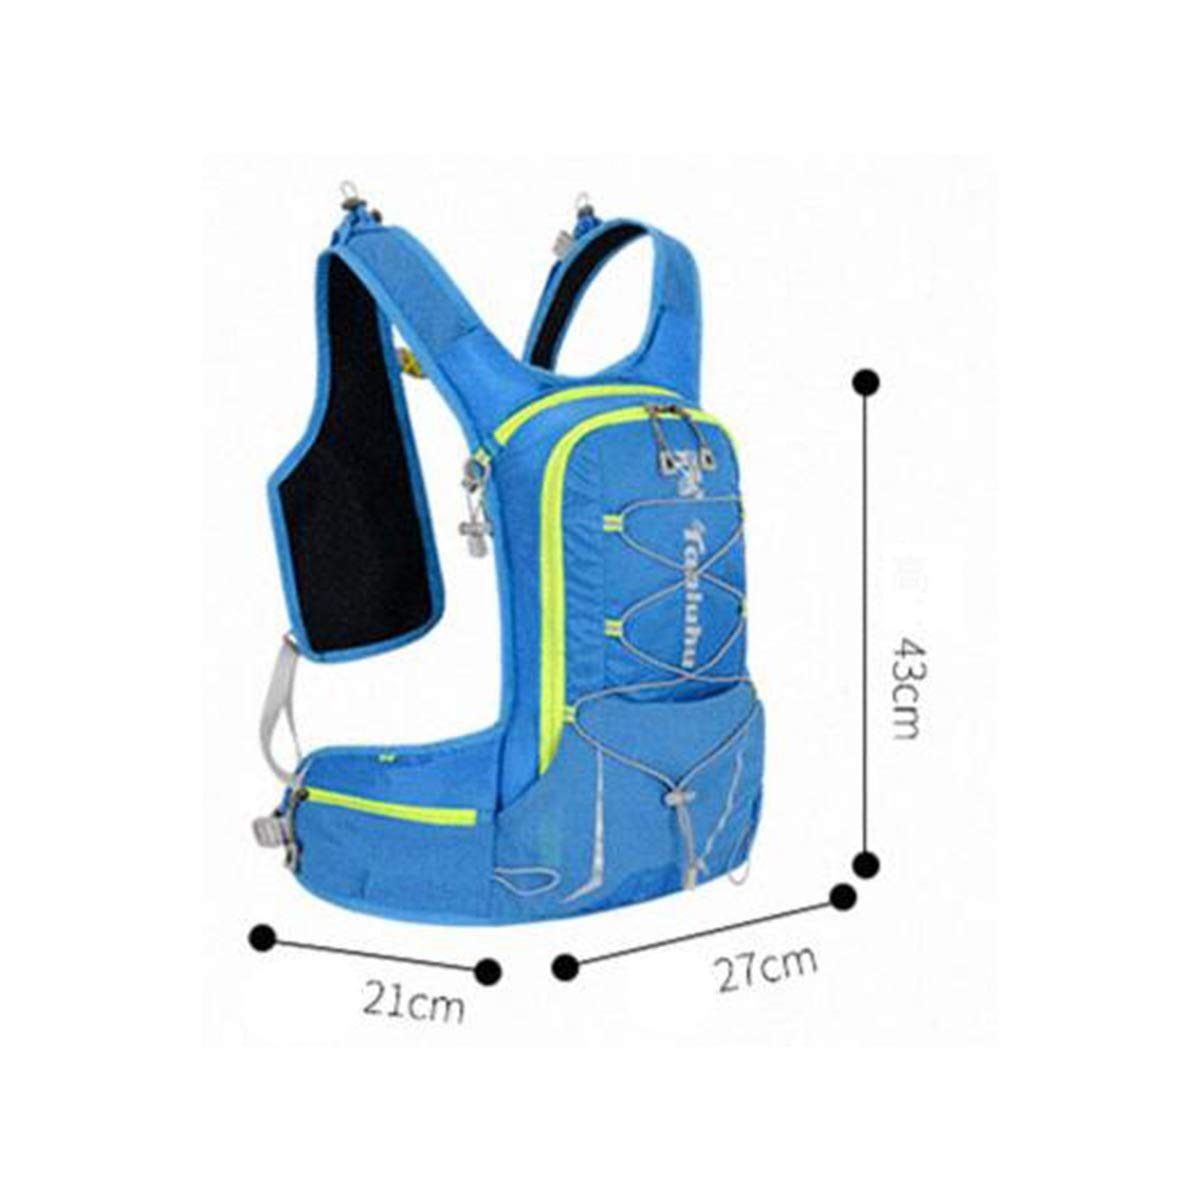 Male and Female Marathon Cycling Backpack Color : Blue Qingduqijian Vest Backpack Running Backpack Lightweight Small Capacity Hiking Backpack